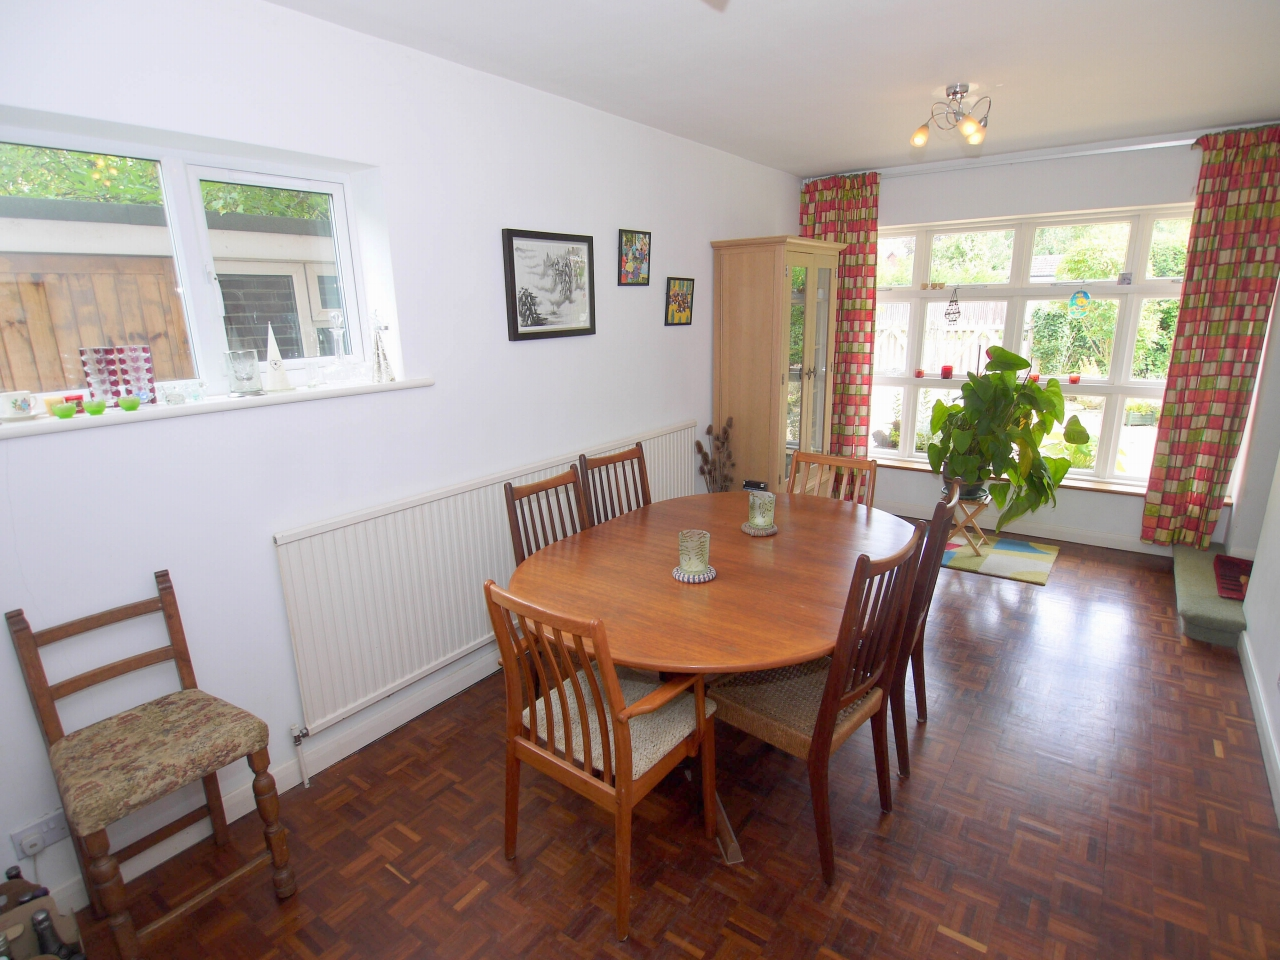 4 bedroom detached house Sold in Tonbridge - Photograph 4